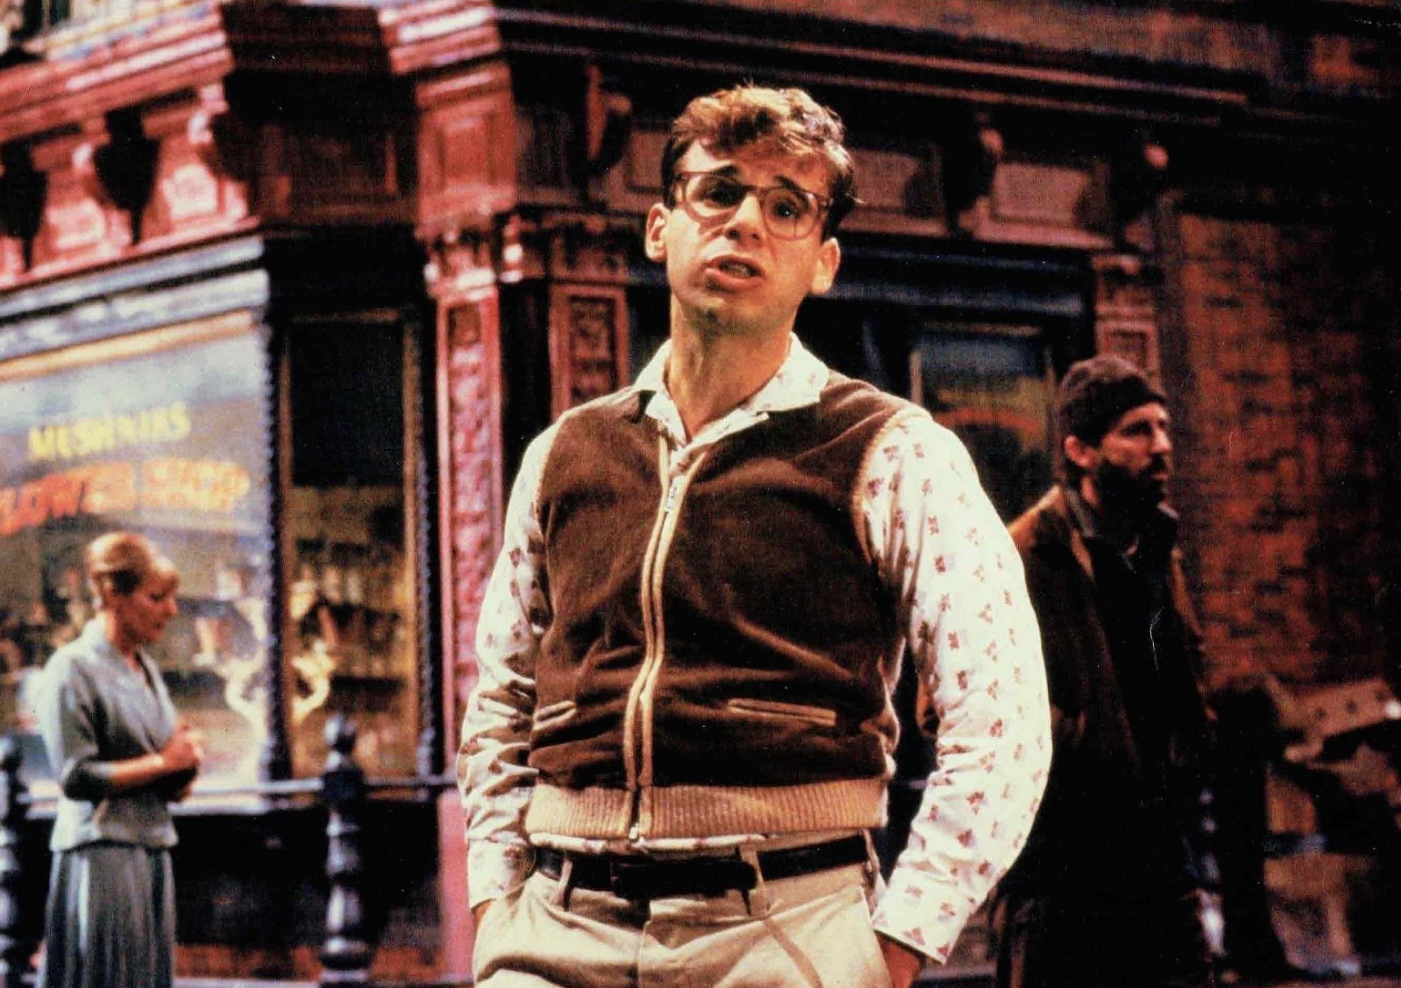 32 25 Things You Never Knew About Little Shop of Horrors